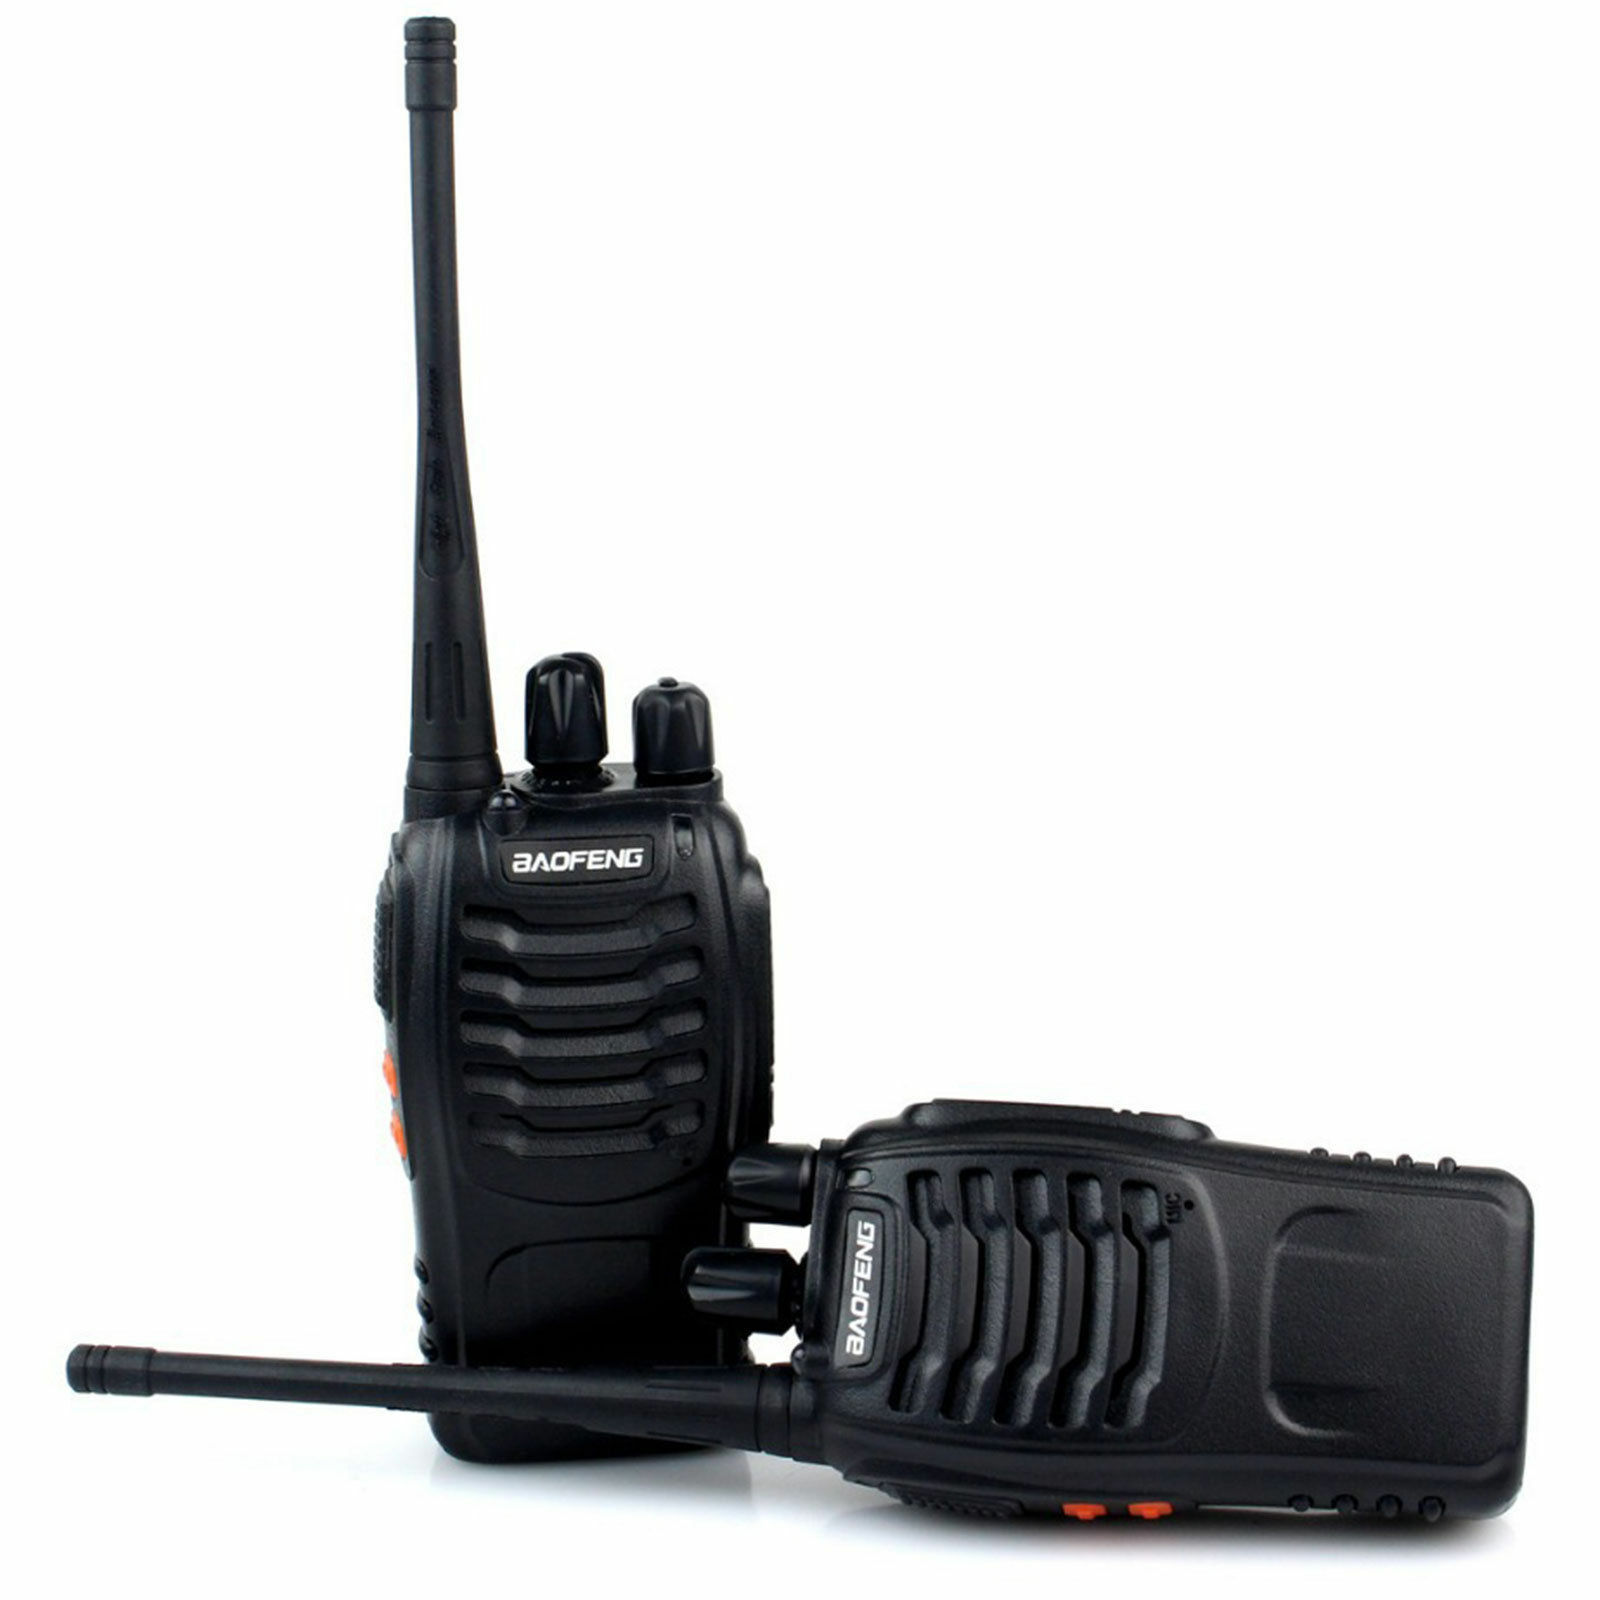 2x baofeng walkie talkie long range 2 way radio uhf 400 470mhz 16ch earpiece uk eur 22 74. Black Bedroom Furniture Sets. Home Design Ideas